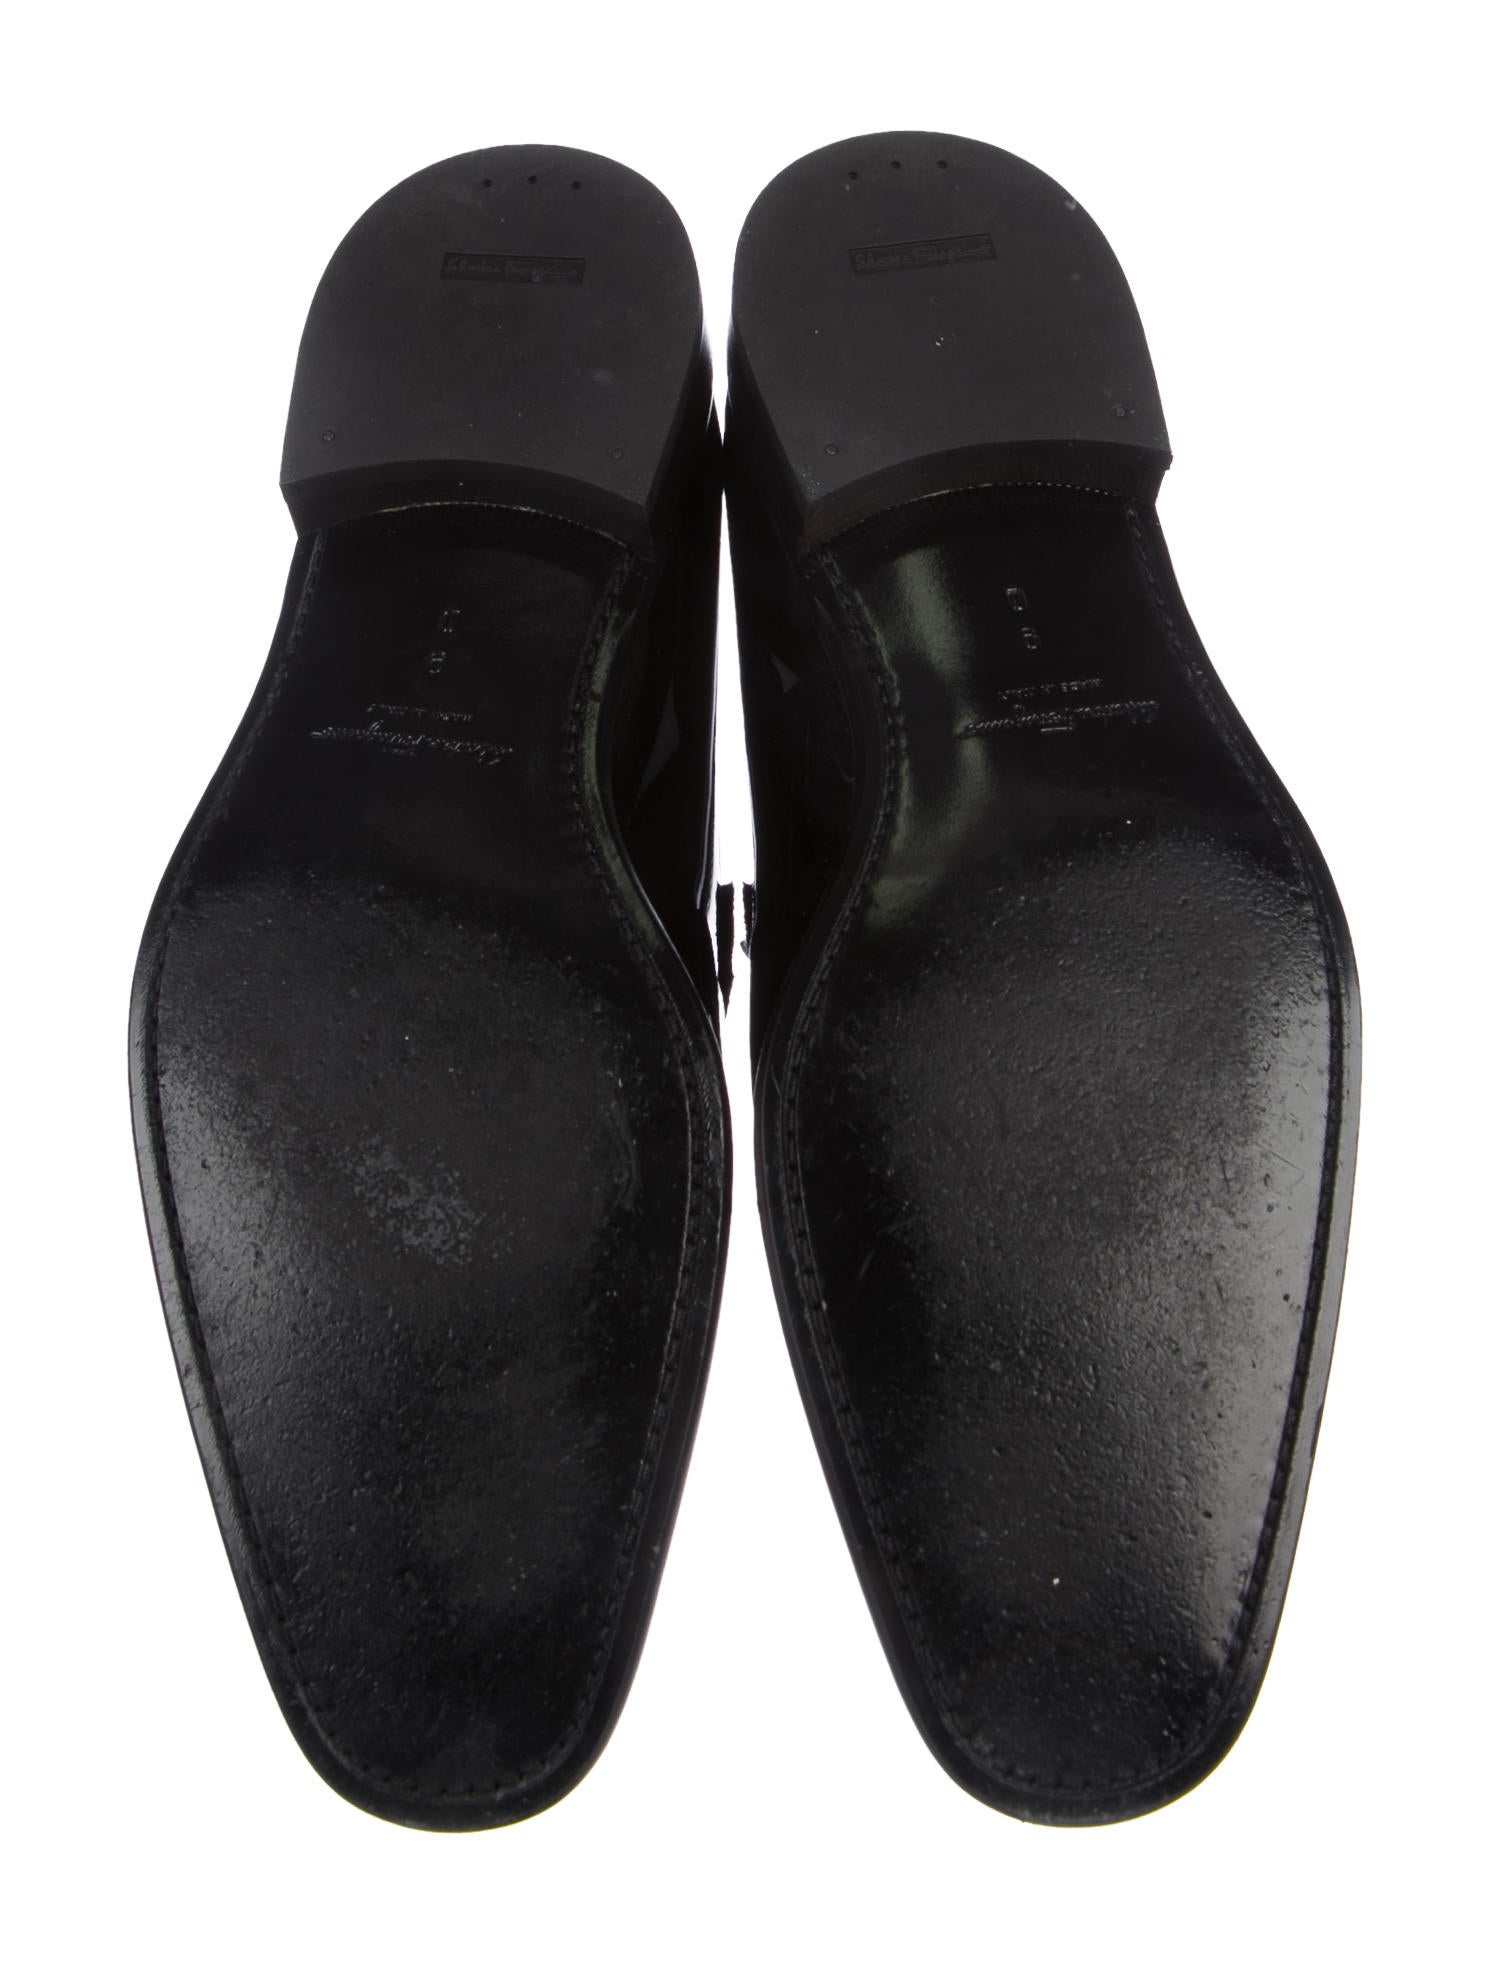 salvatore ferragamo lucky patent leather loafers shoes